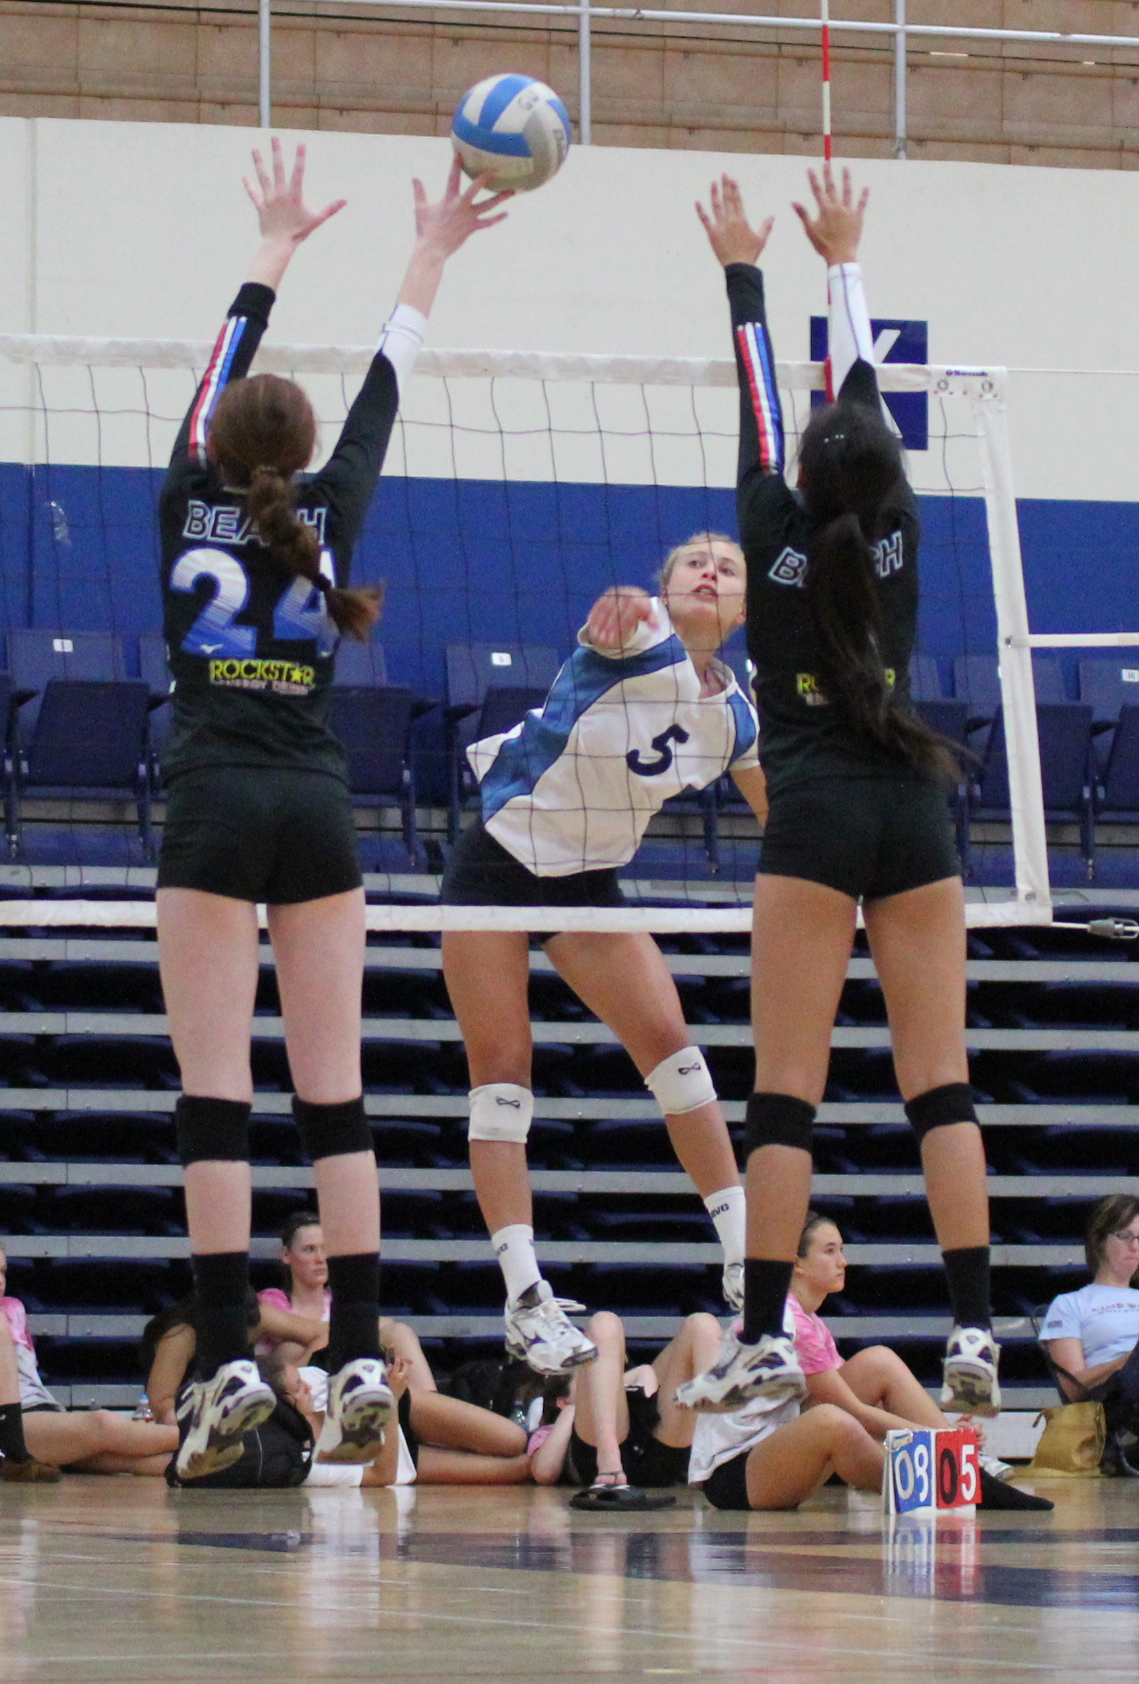 Emily Allen of the Santa Barbara VC's 15-Smack hits through the block during a match at the SCVA's Regional Championships. (Photo by Steve Goss)